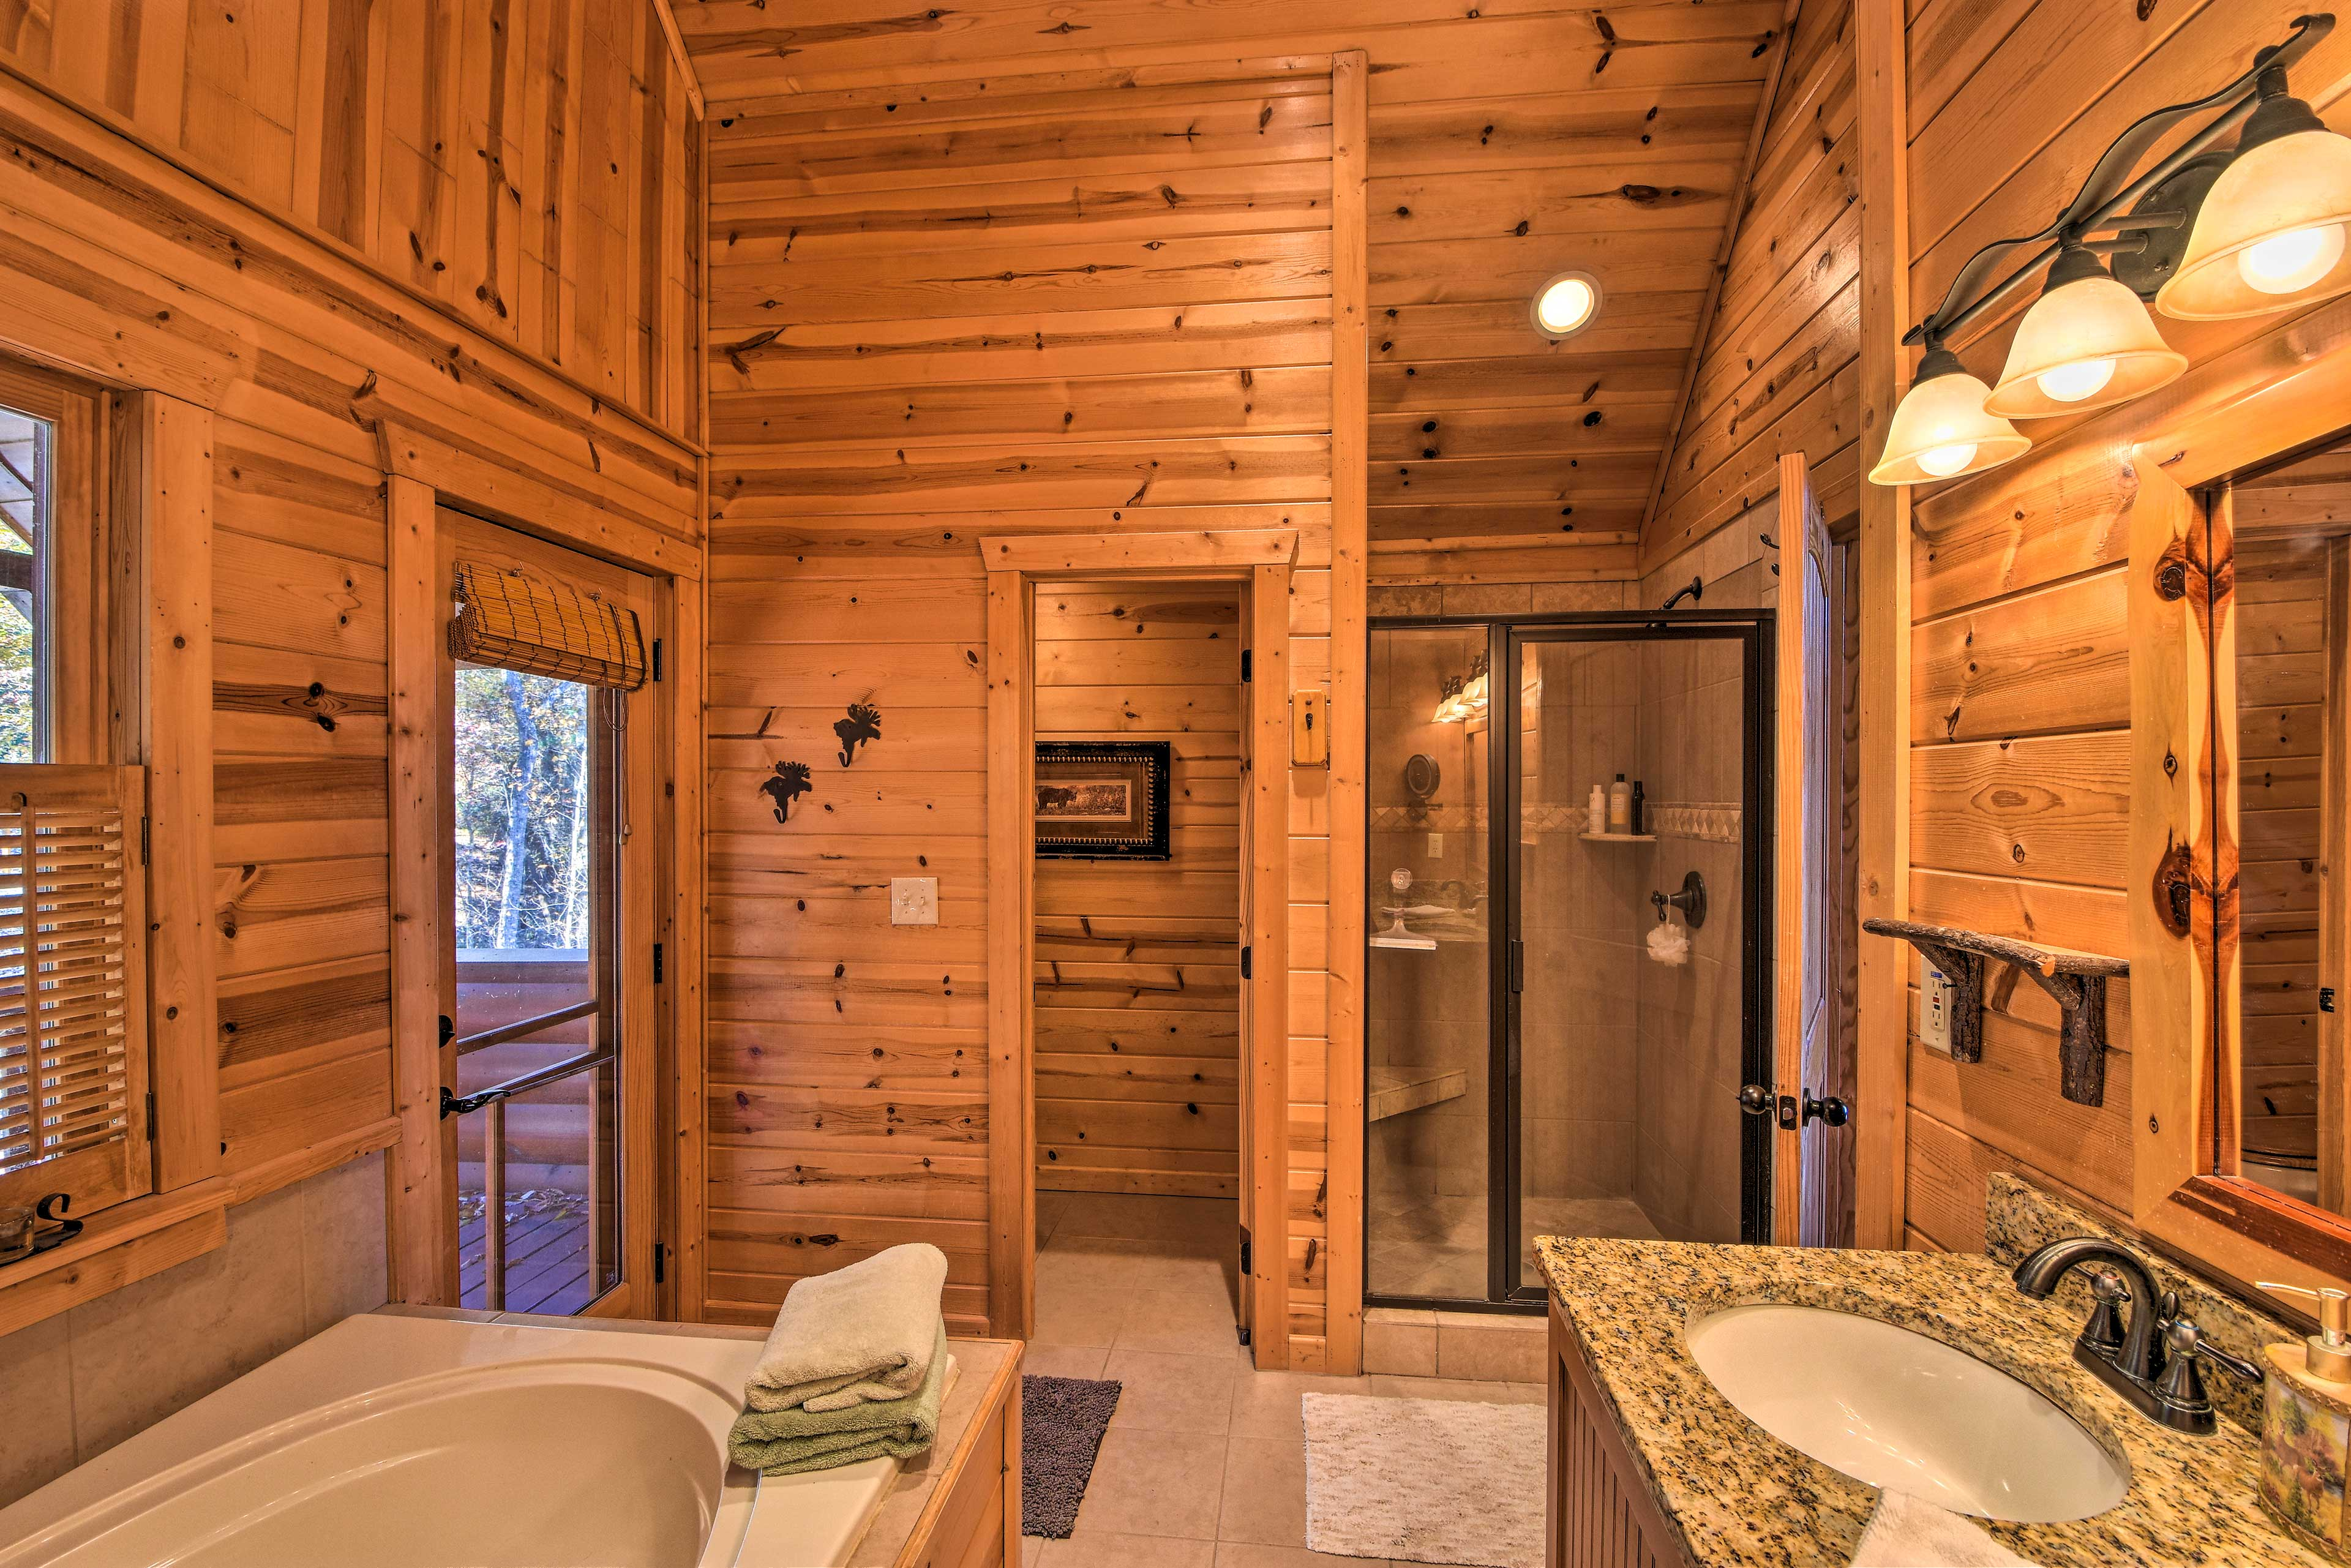 The master en-suite features a walk-in shower and jetted tub.